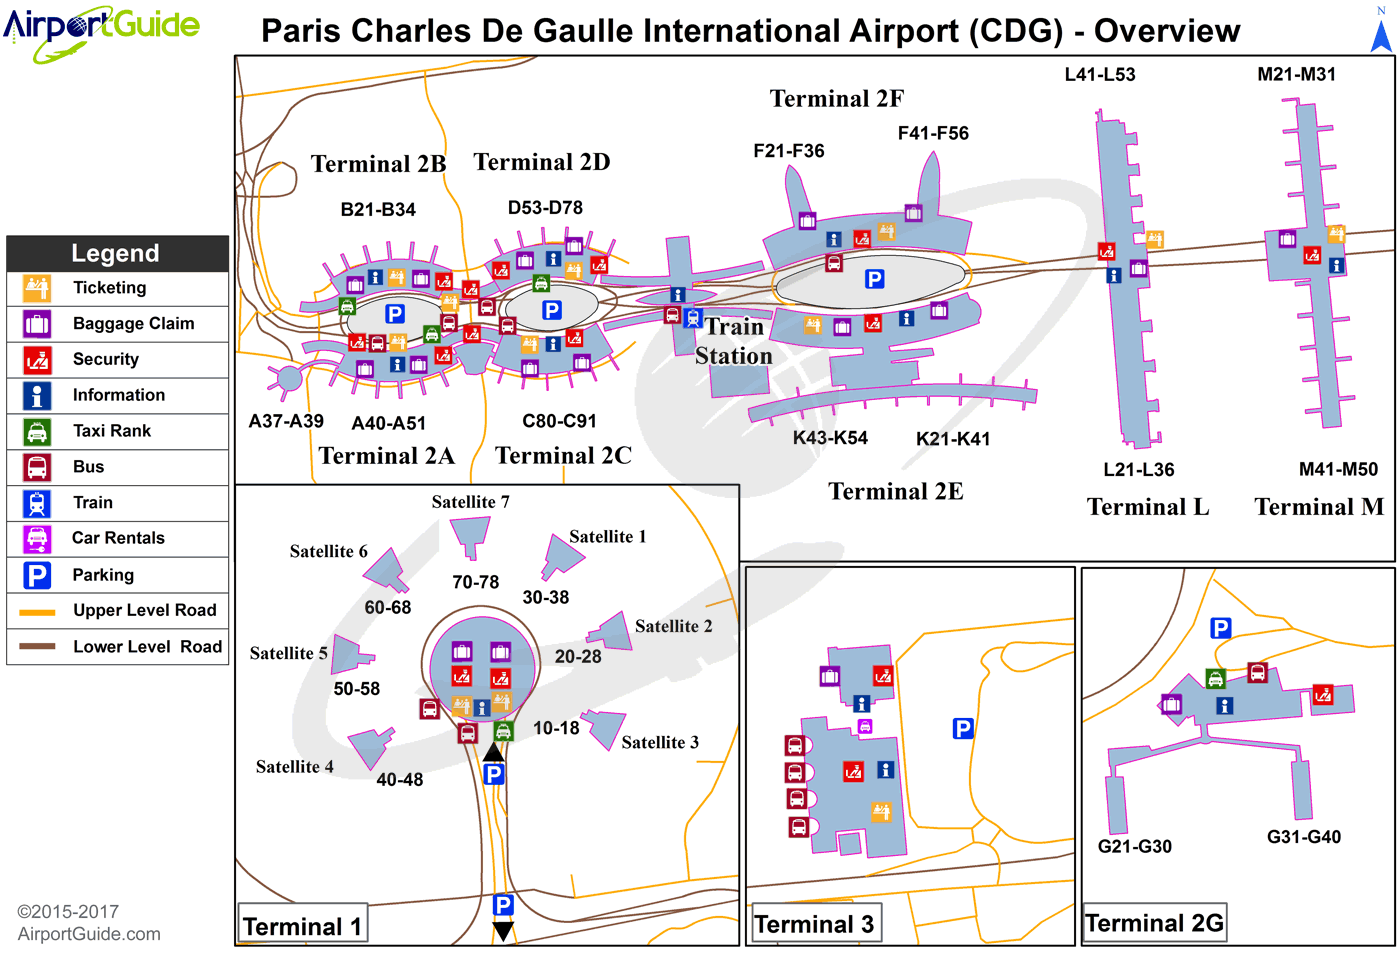 Paris - Charles de Gaulle International (CDG) Airport Terminal Map - Overview